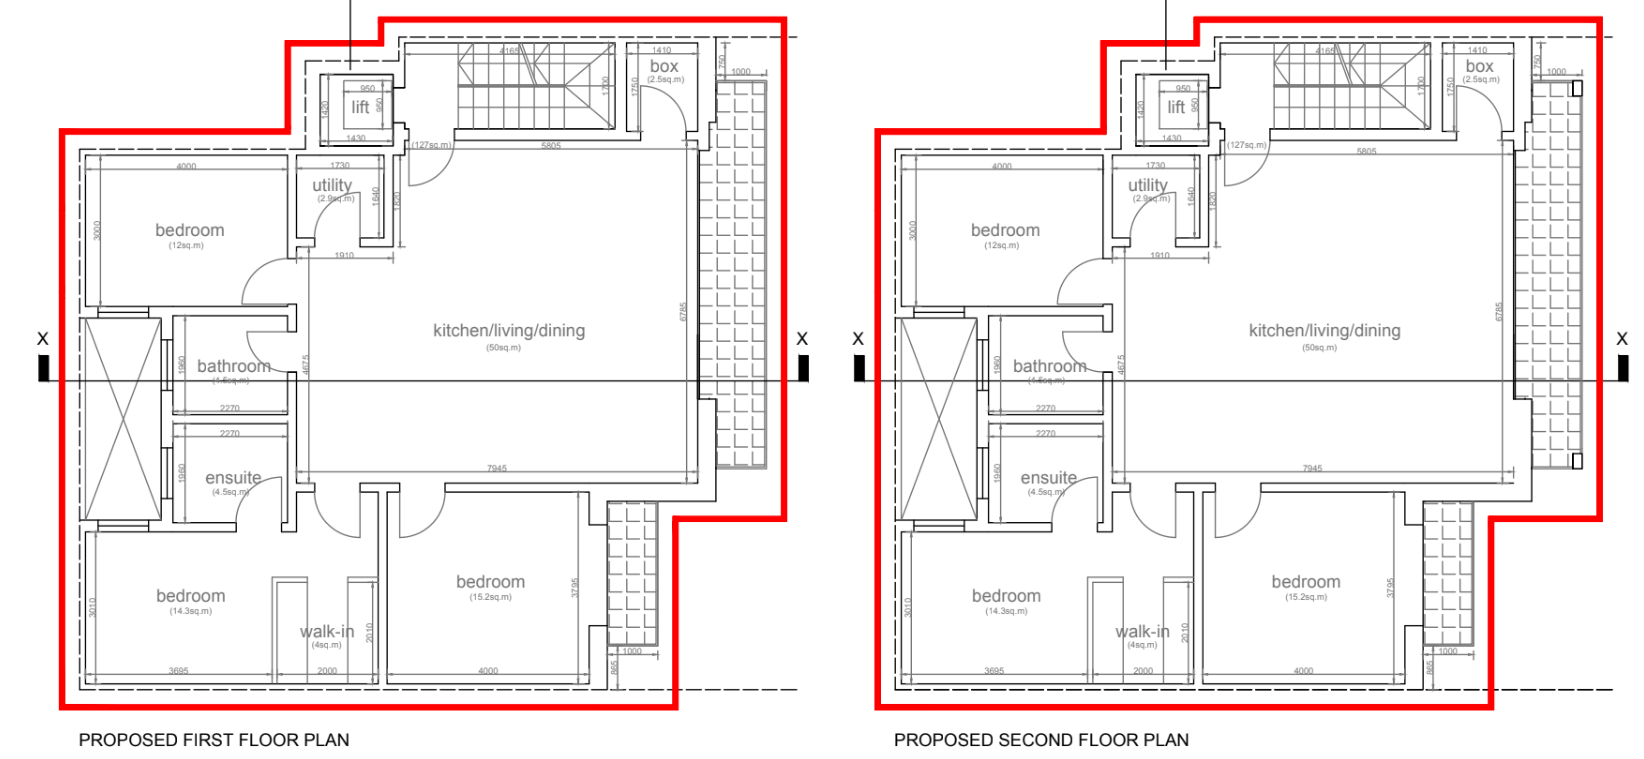 malta property: Plans